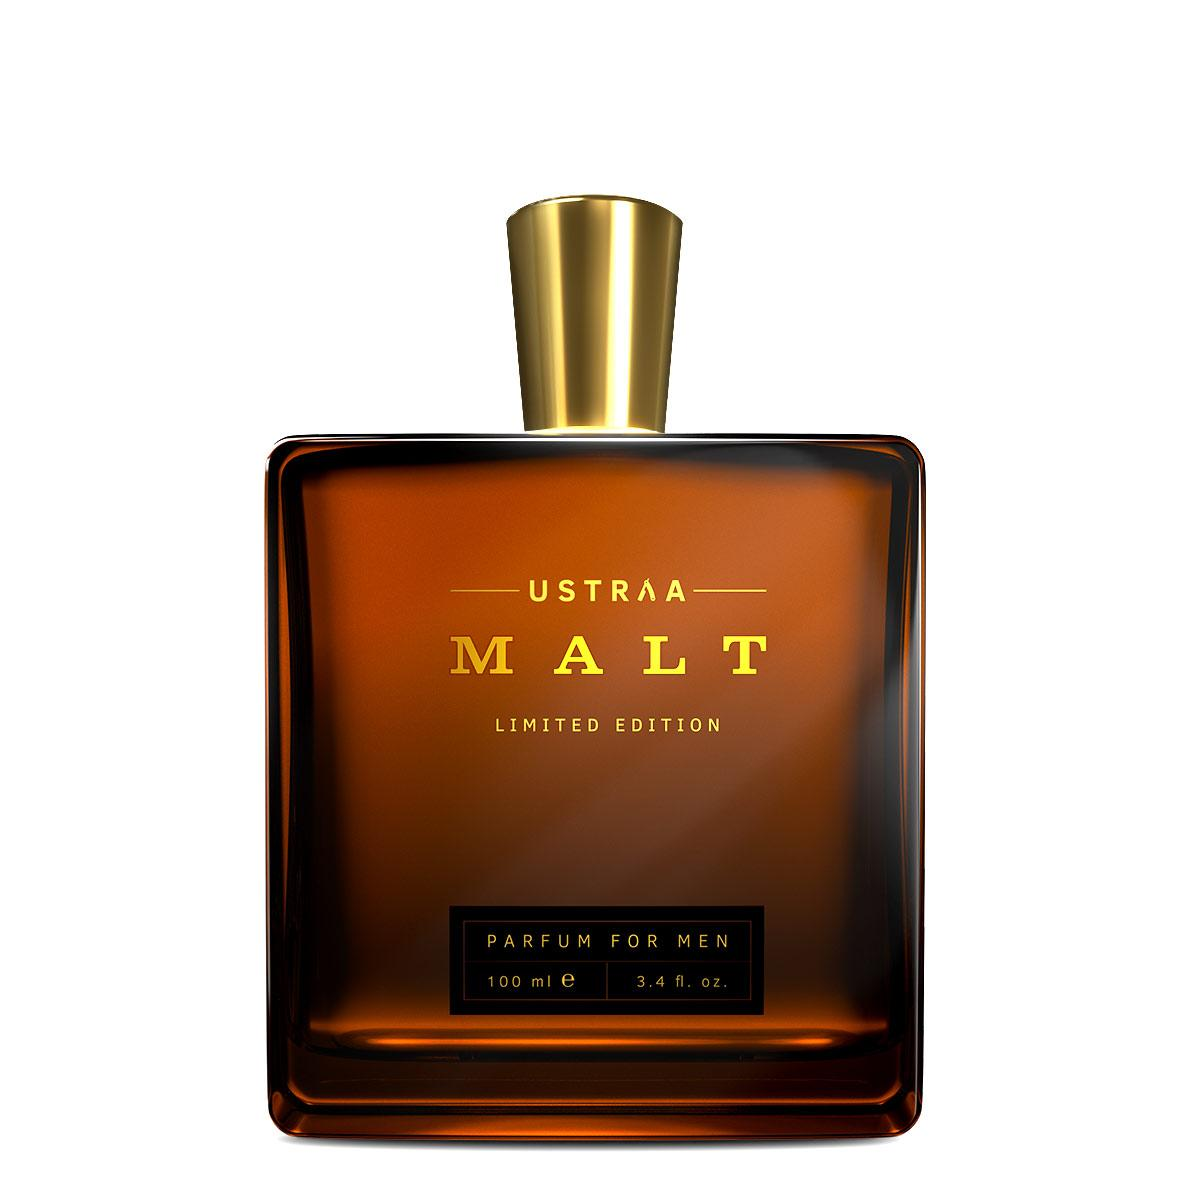 Ustraa Malt Perfume for Men - 100 ml - A Blend of Select High End Fragrances with Warm and Sweet Top Notes